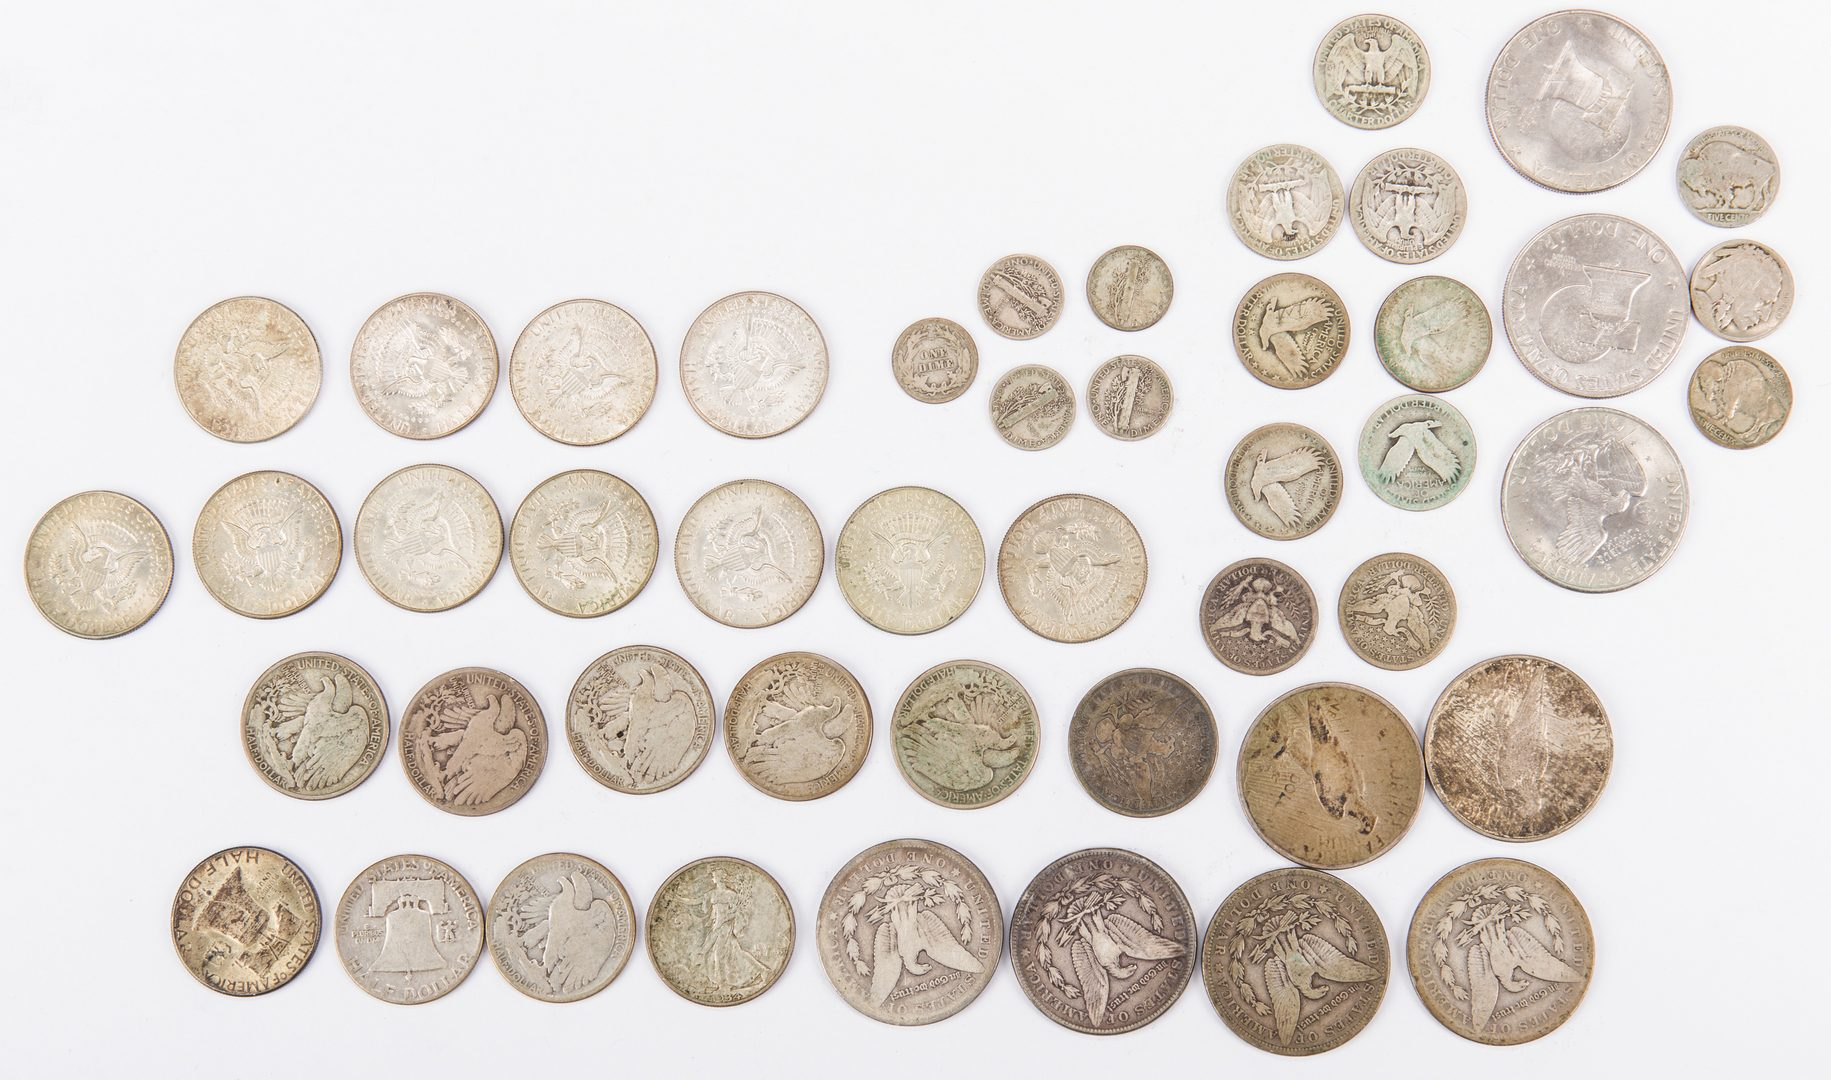 Lot 886: Collection of U.S. Silver Coins, 34 total